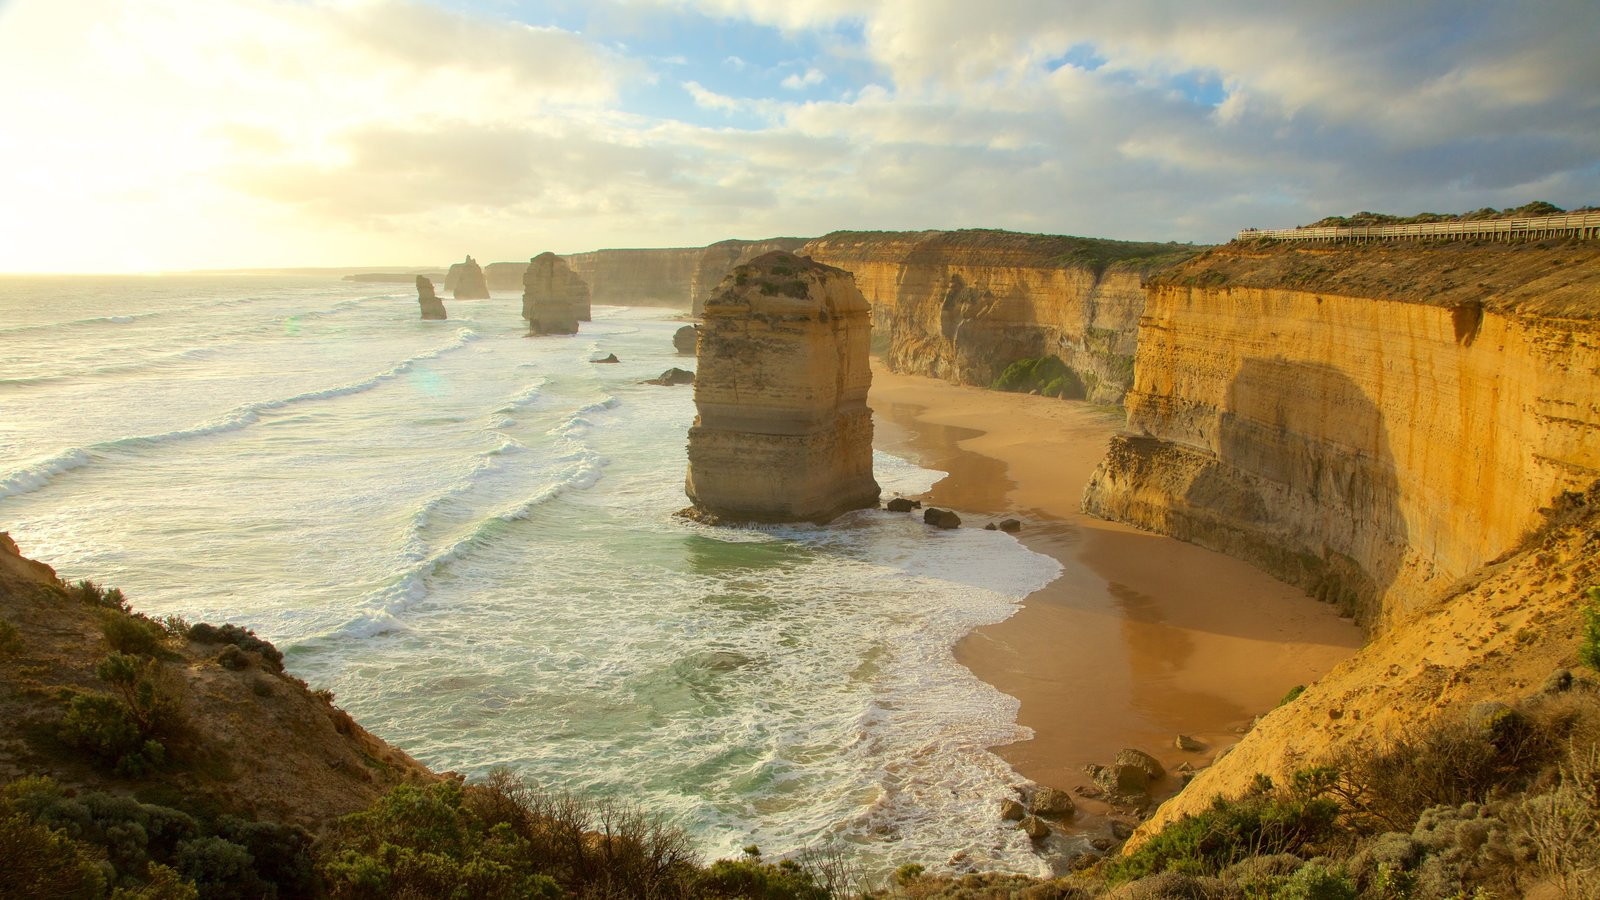 Twelve Apostles featuring a gorge or canyon, a sunset and rocky coastline